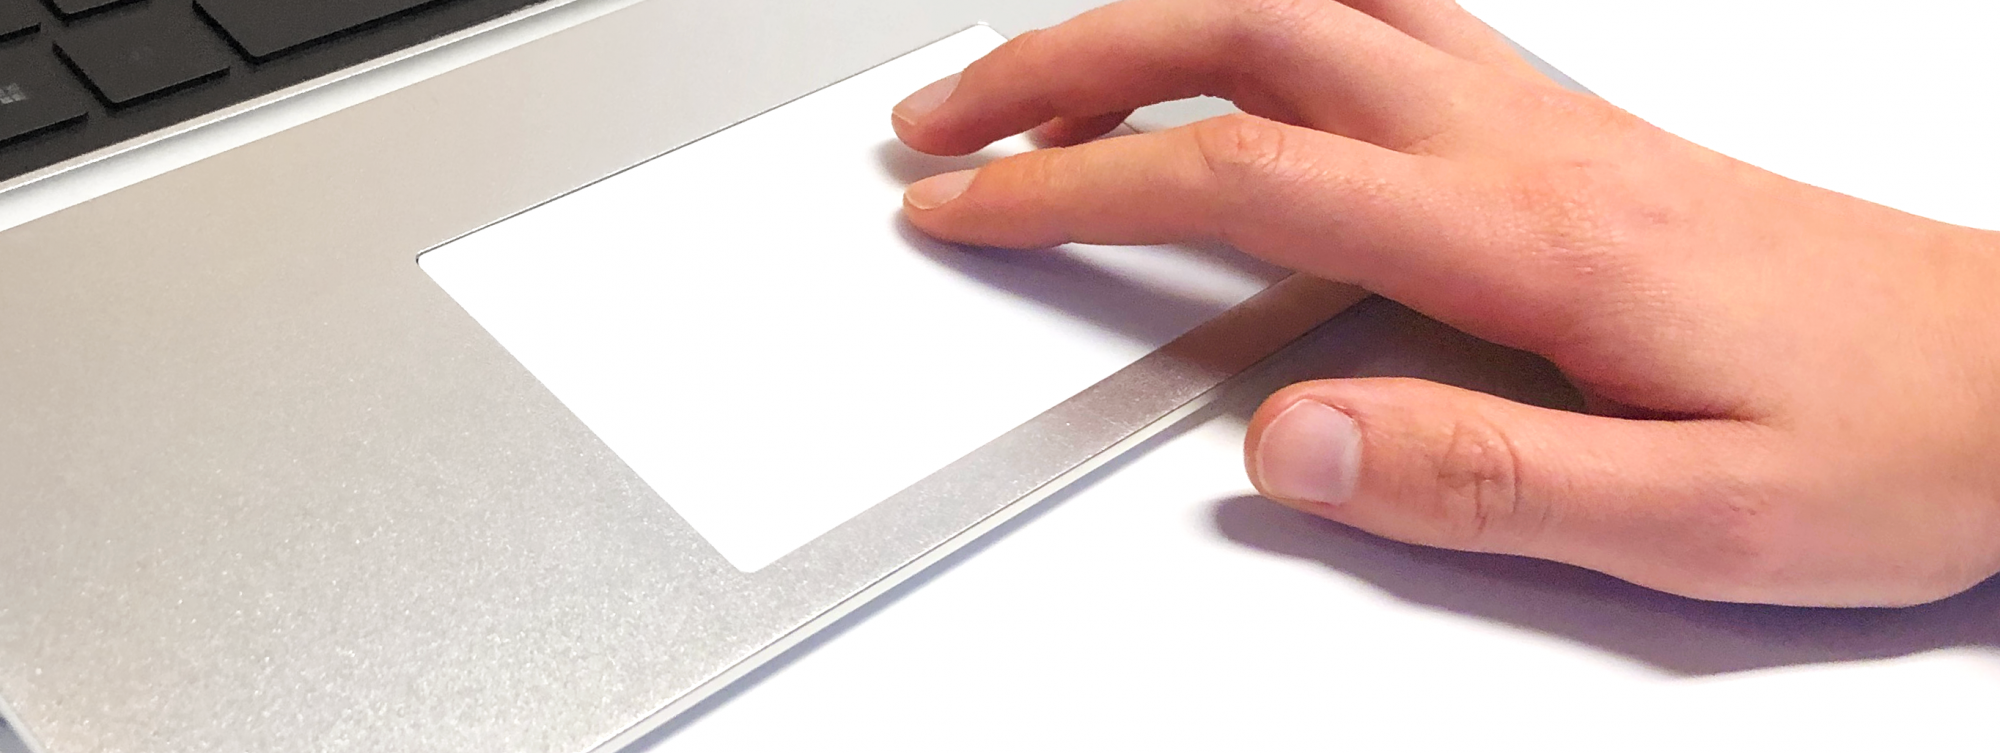 trackpad with hand 2_0